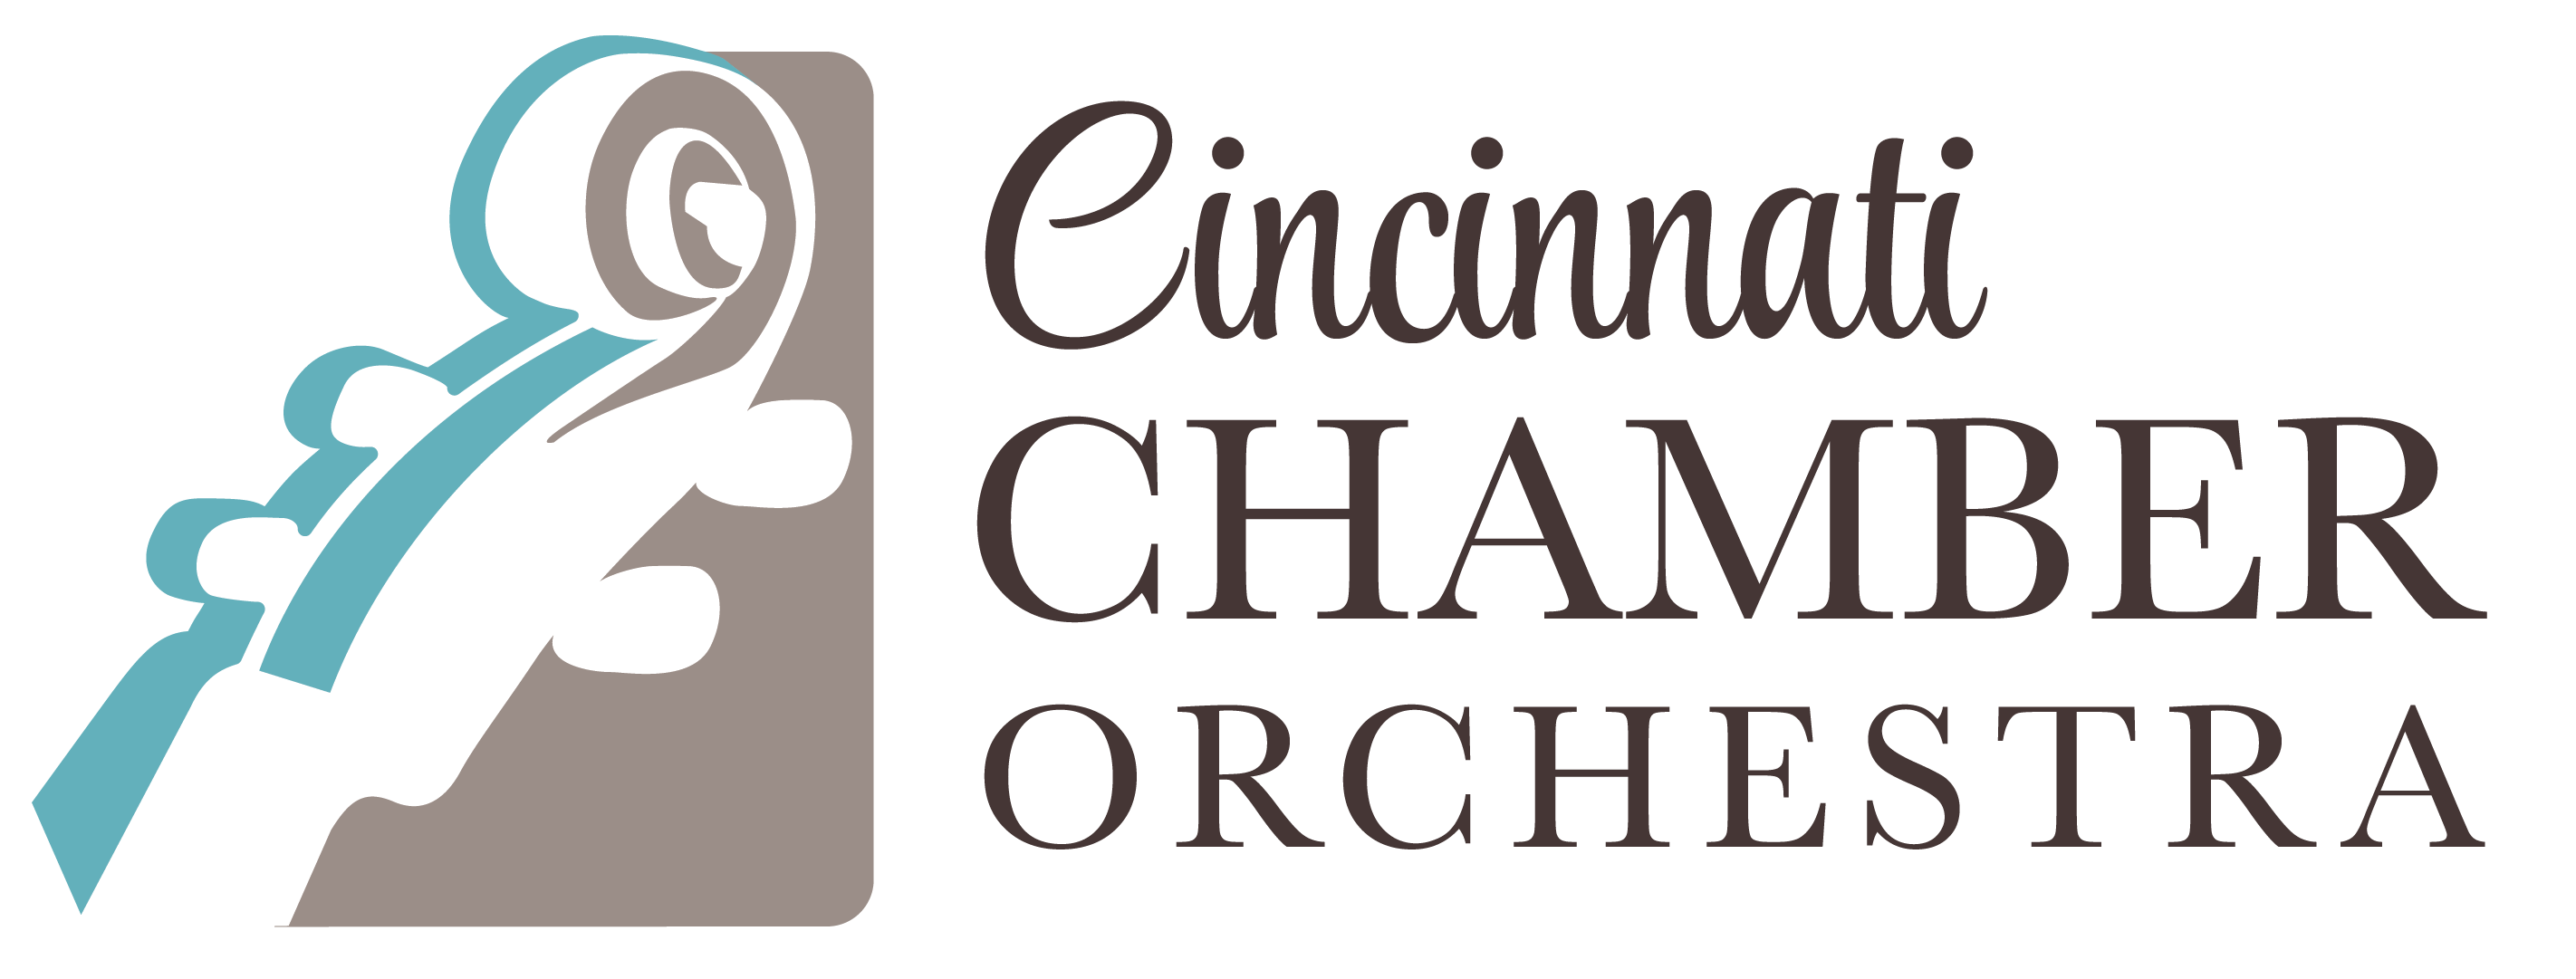 Voyage of the red violin cincinnati chamber orchestra malvernweather Choice Image